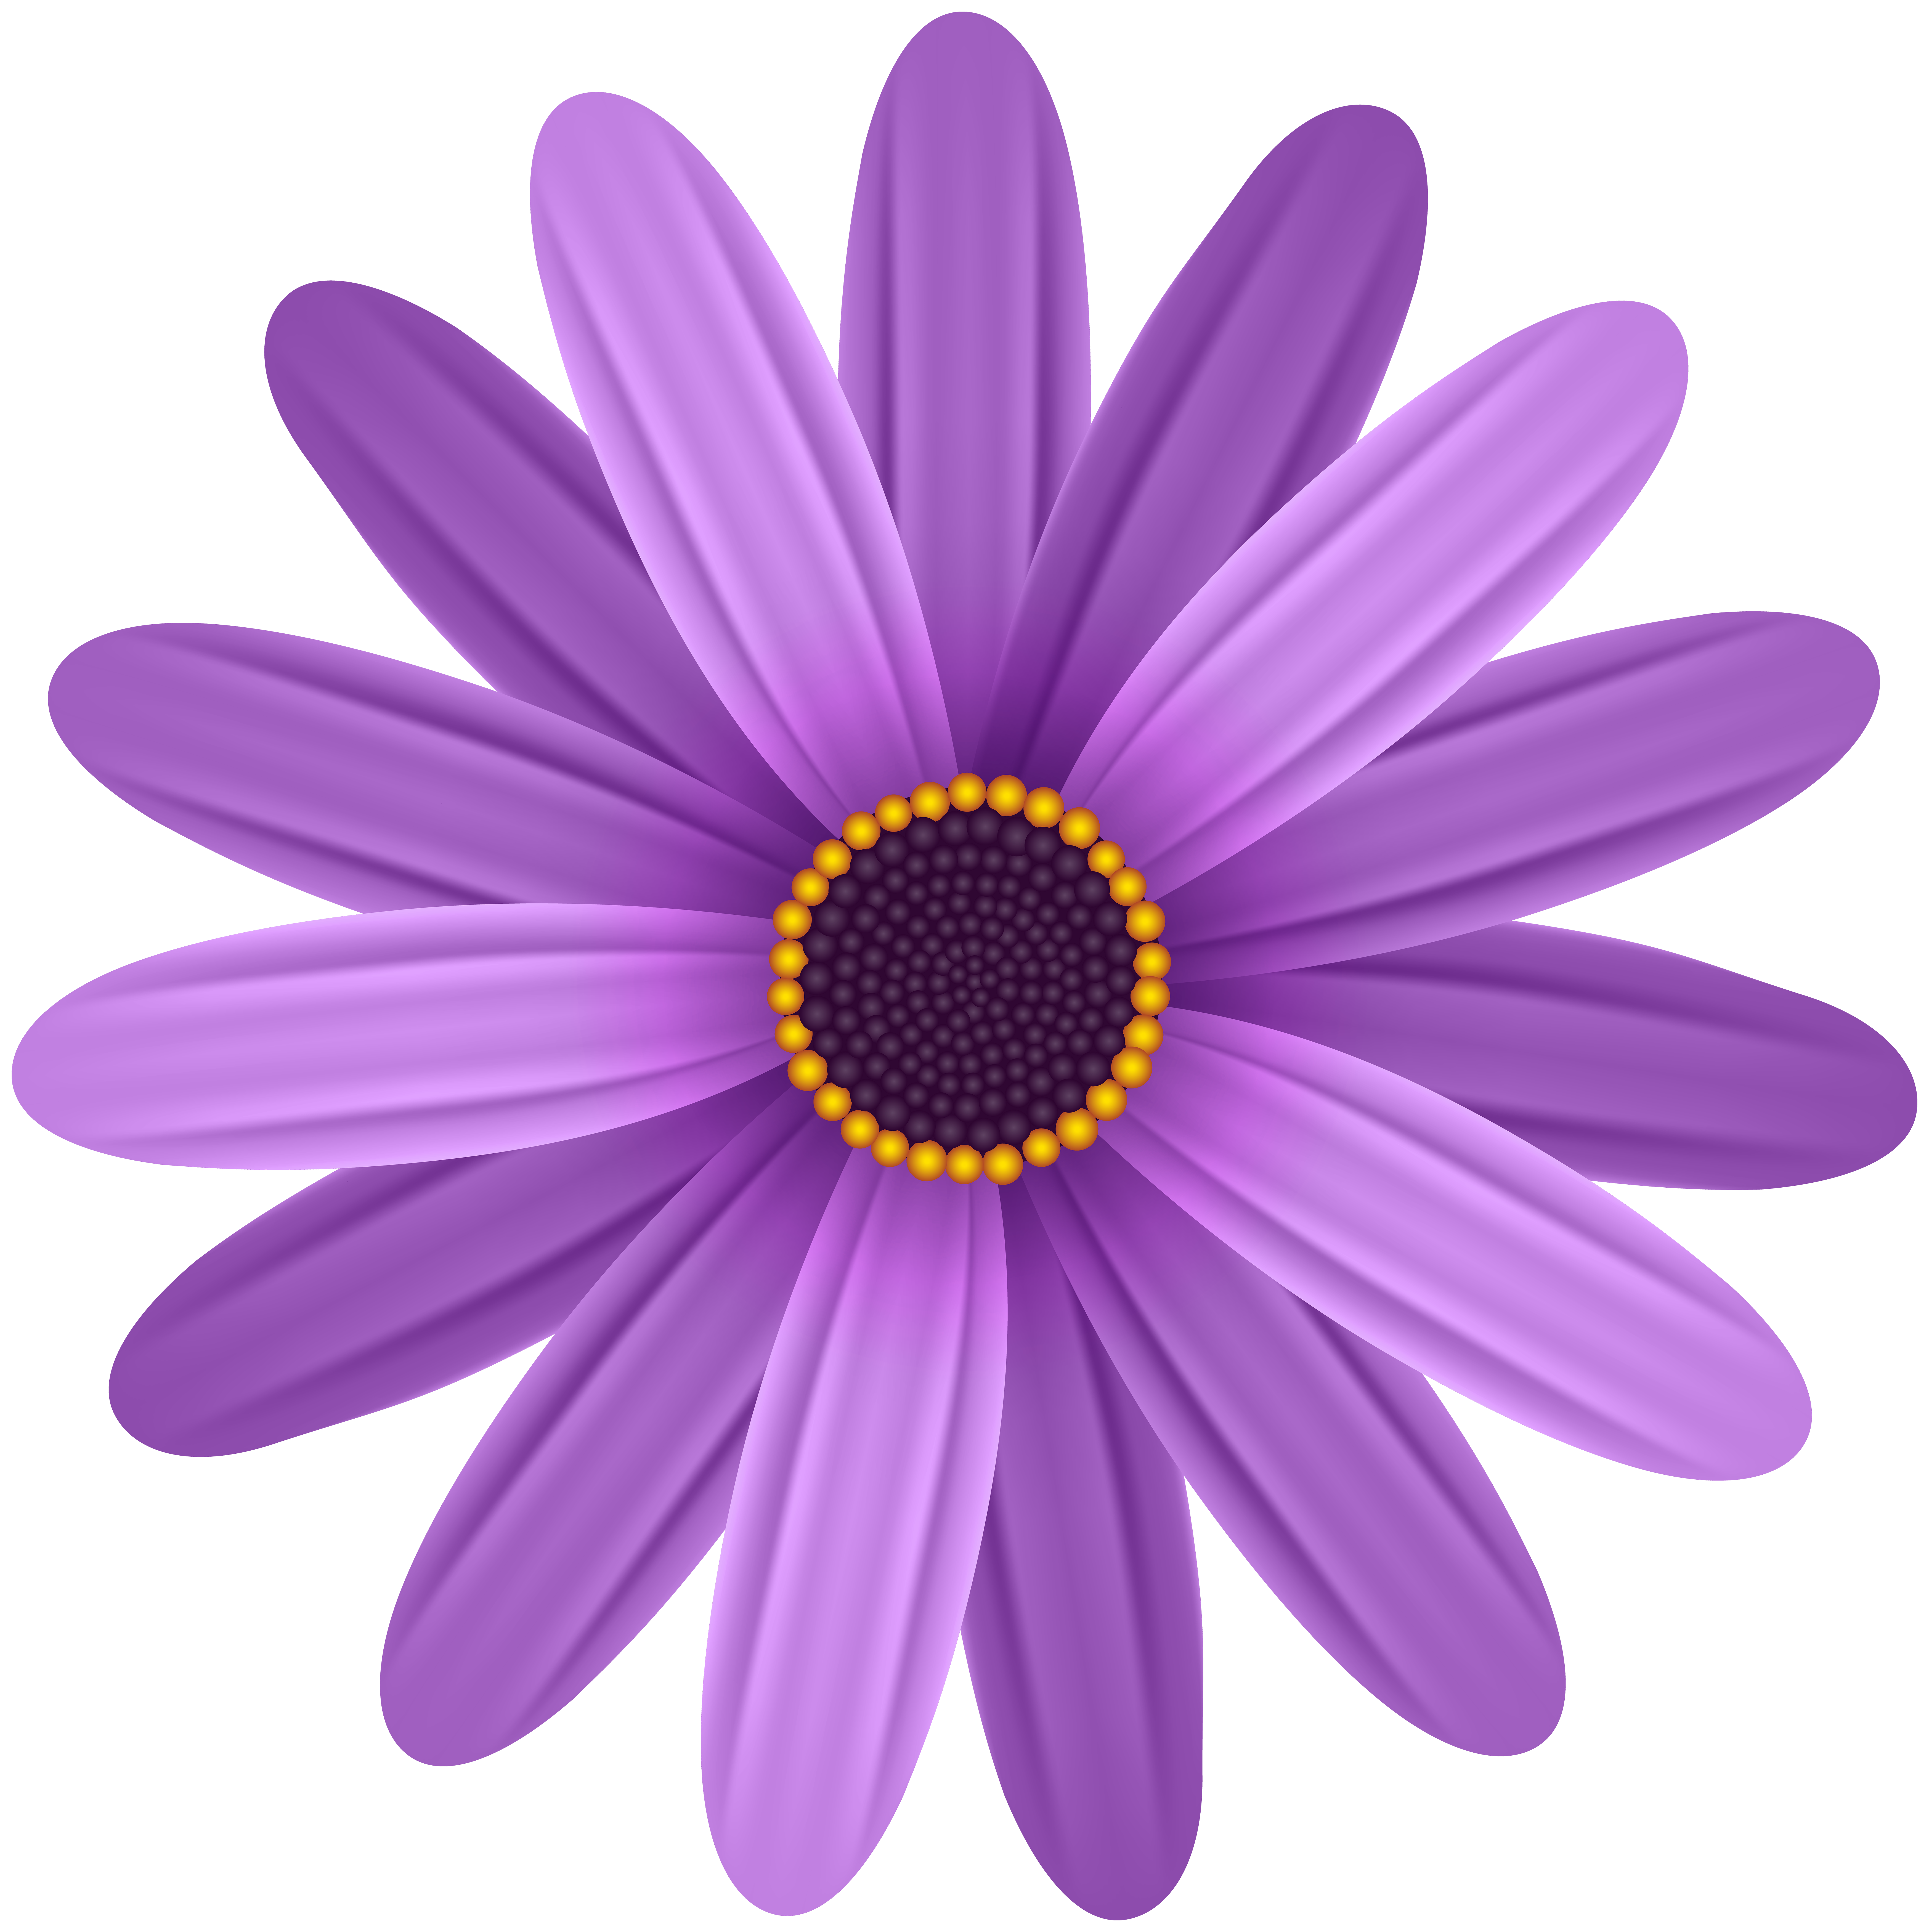 Purpleflowers clipart png free stock Purple Flower Transparent PNG Clip Art Image | Gallery ... png free stock